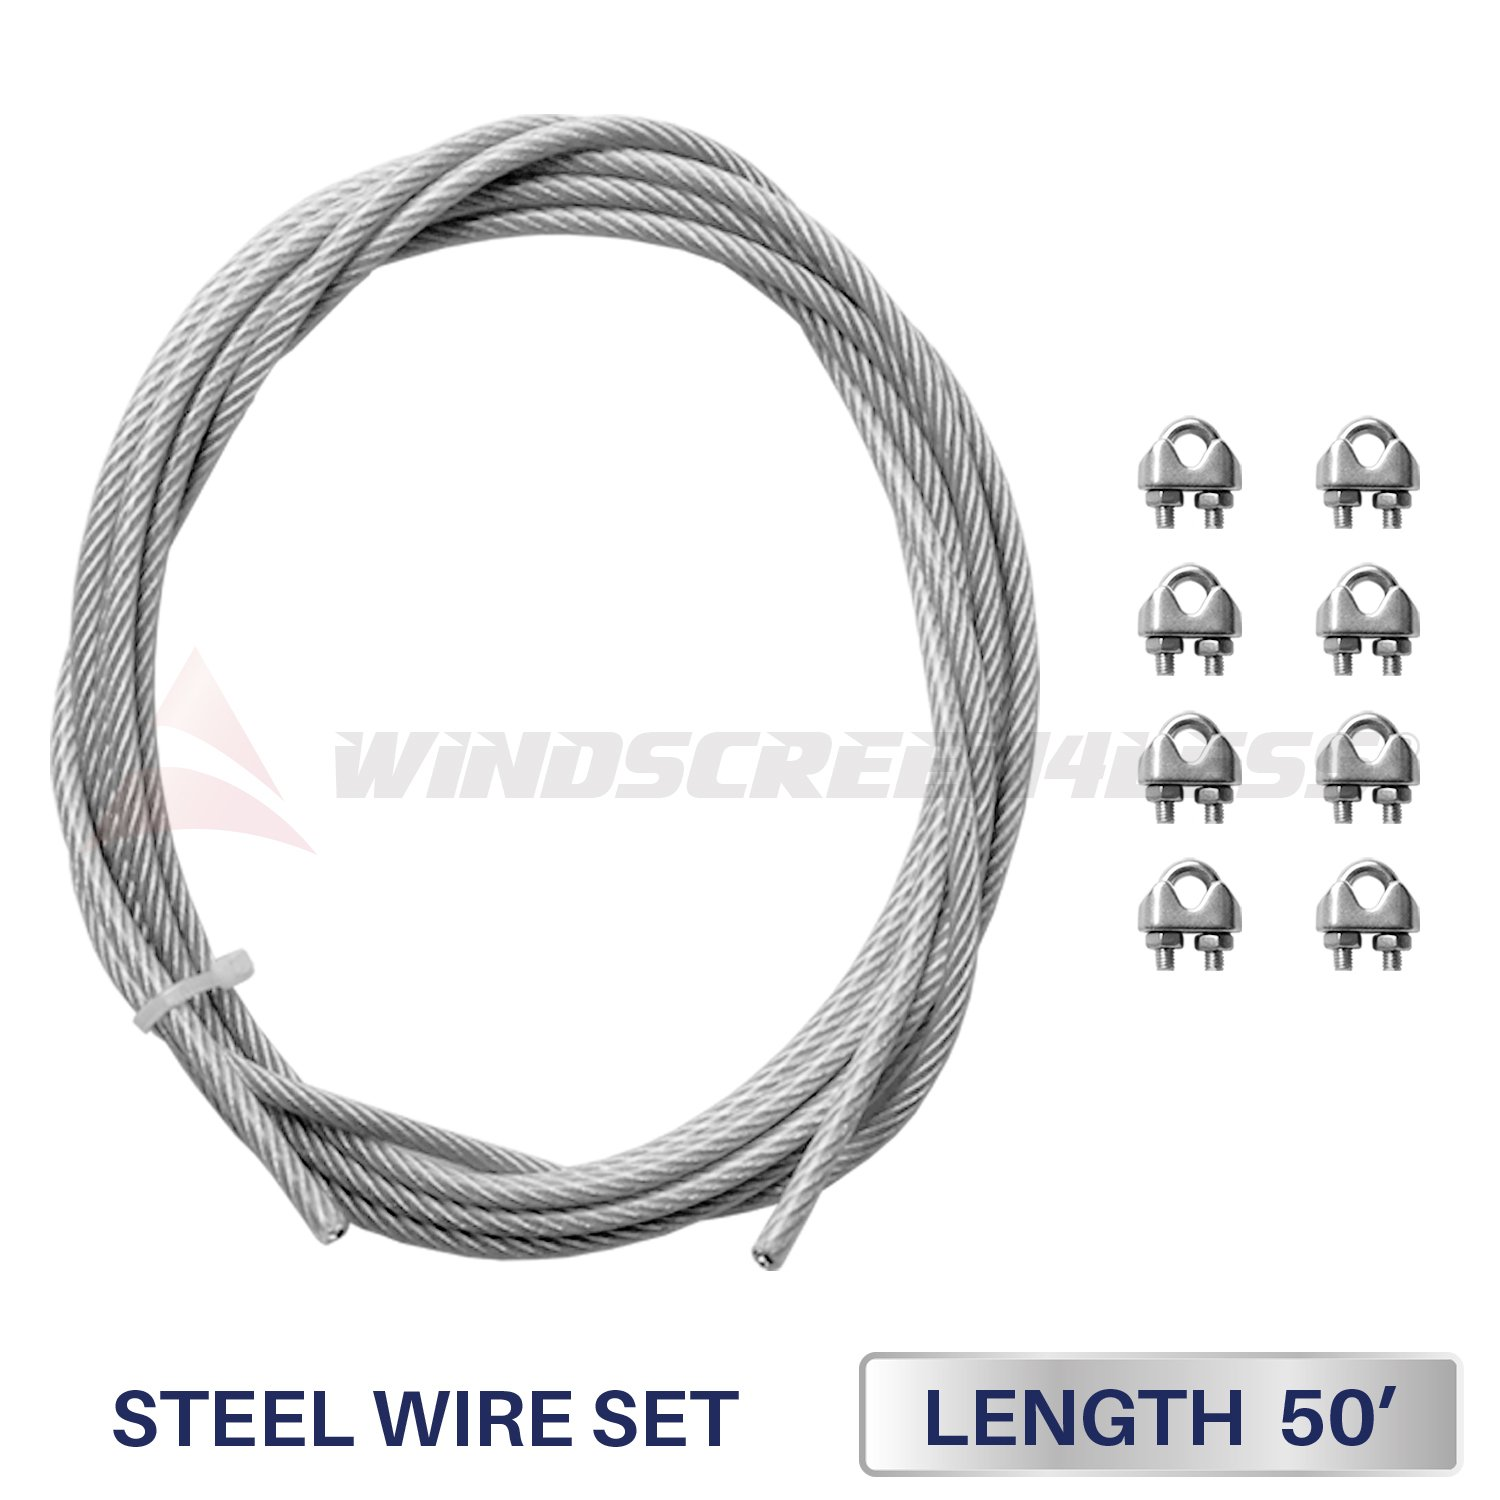 Windscreen4less Shade Sail Wire Rope and 8 Pcs Clips, Vinyl Coated Wire Cable Galvanized Metal Clamp, 3/16-Inch x 50 Feet